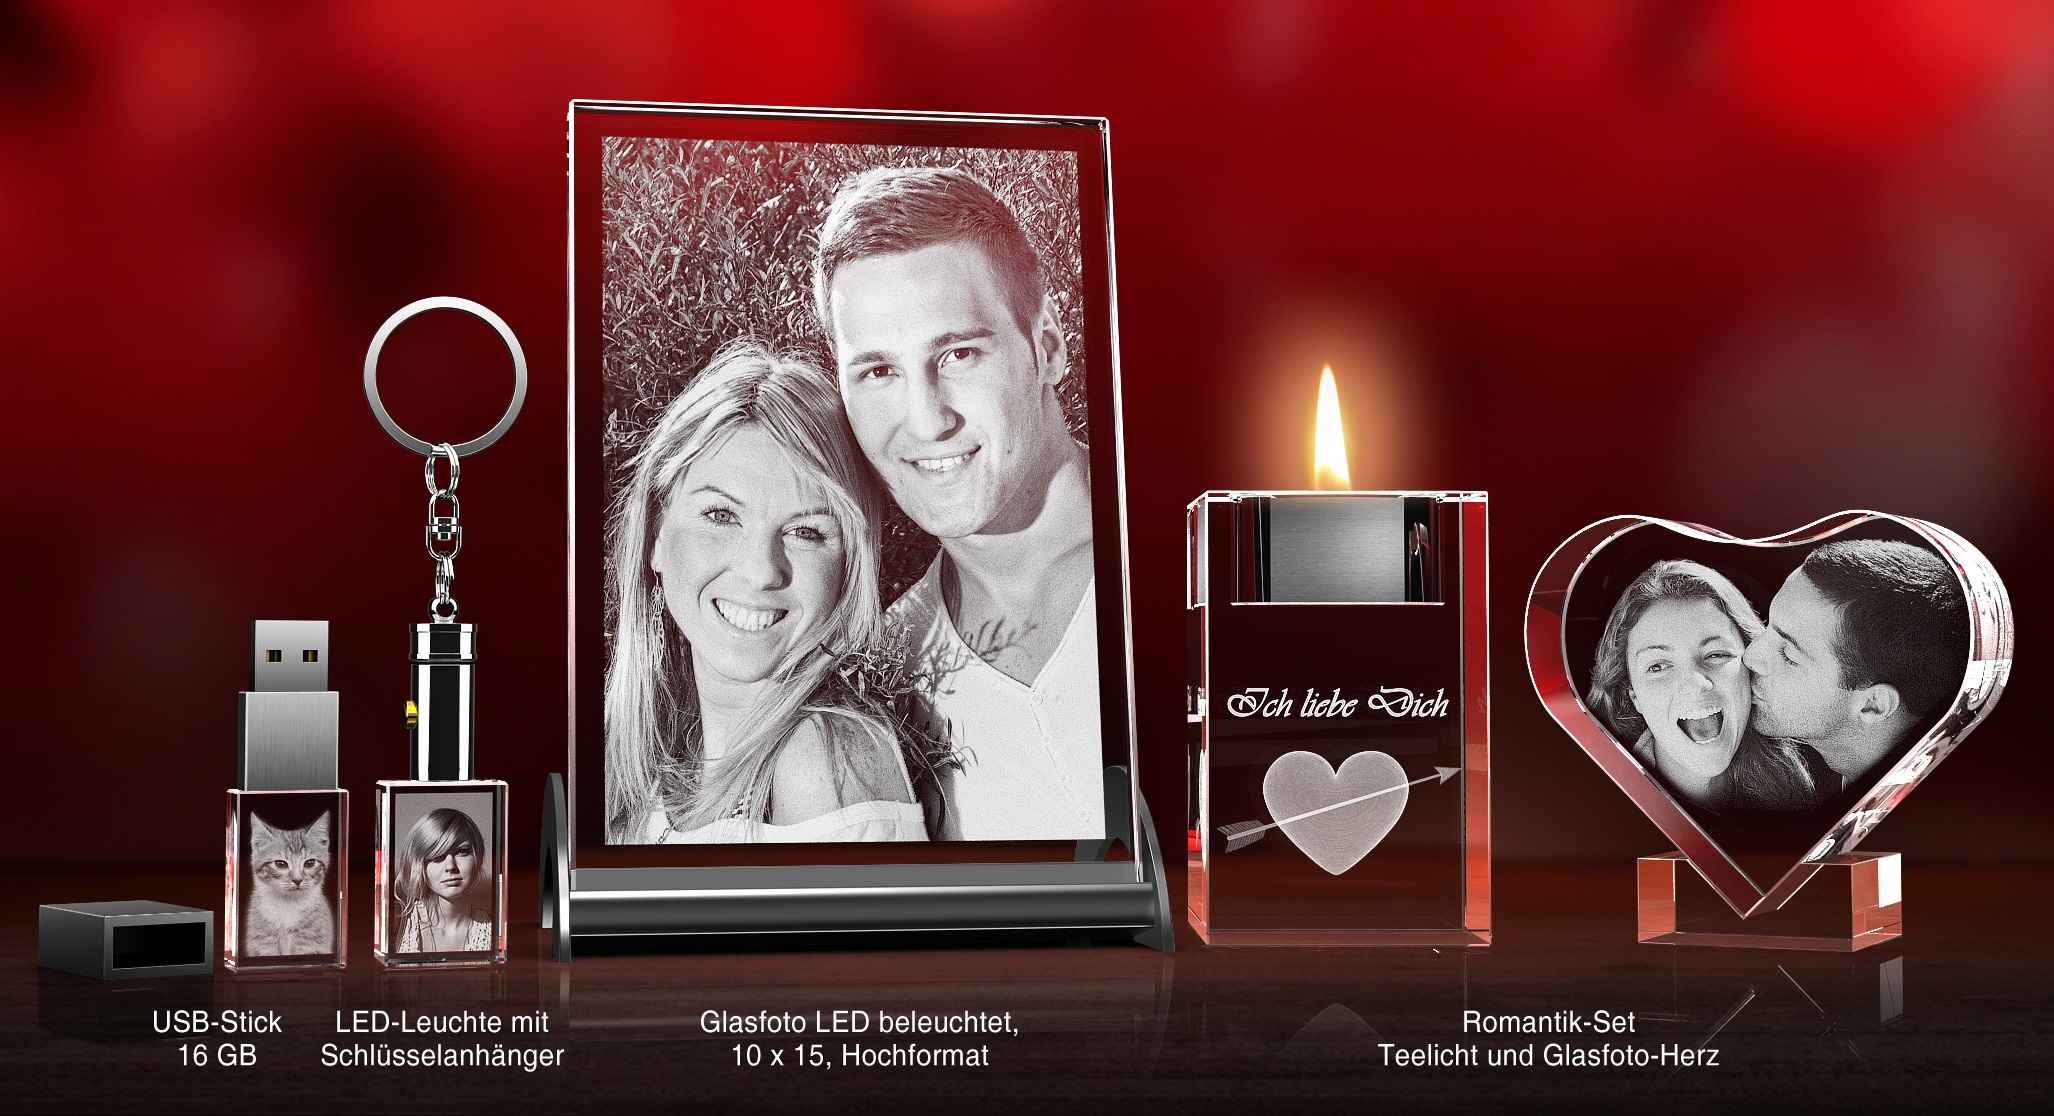 lassen sie ihr 2d foto in glas lasern als glasbild bei glasfoto com. Black Bedroom Furniture Sets. Home Design Ideas